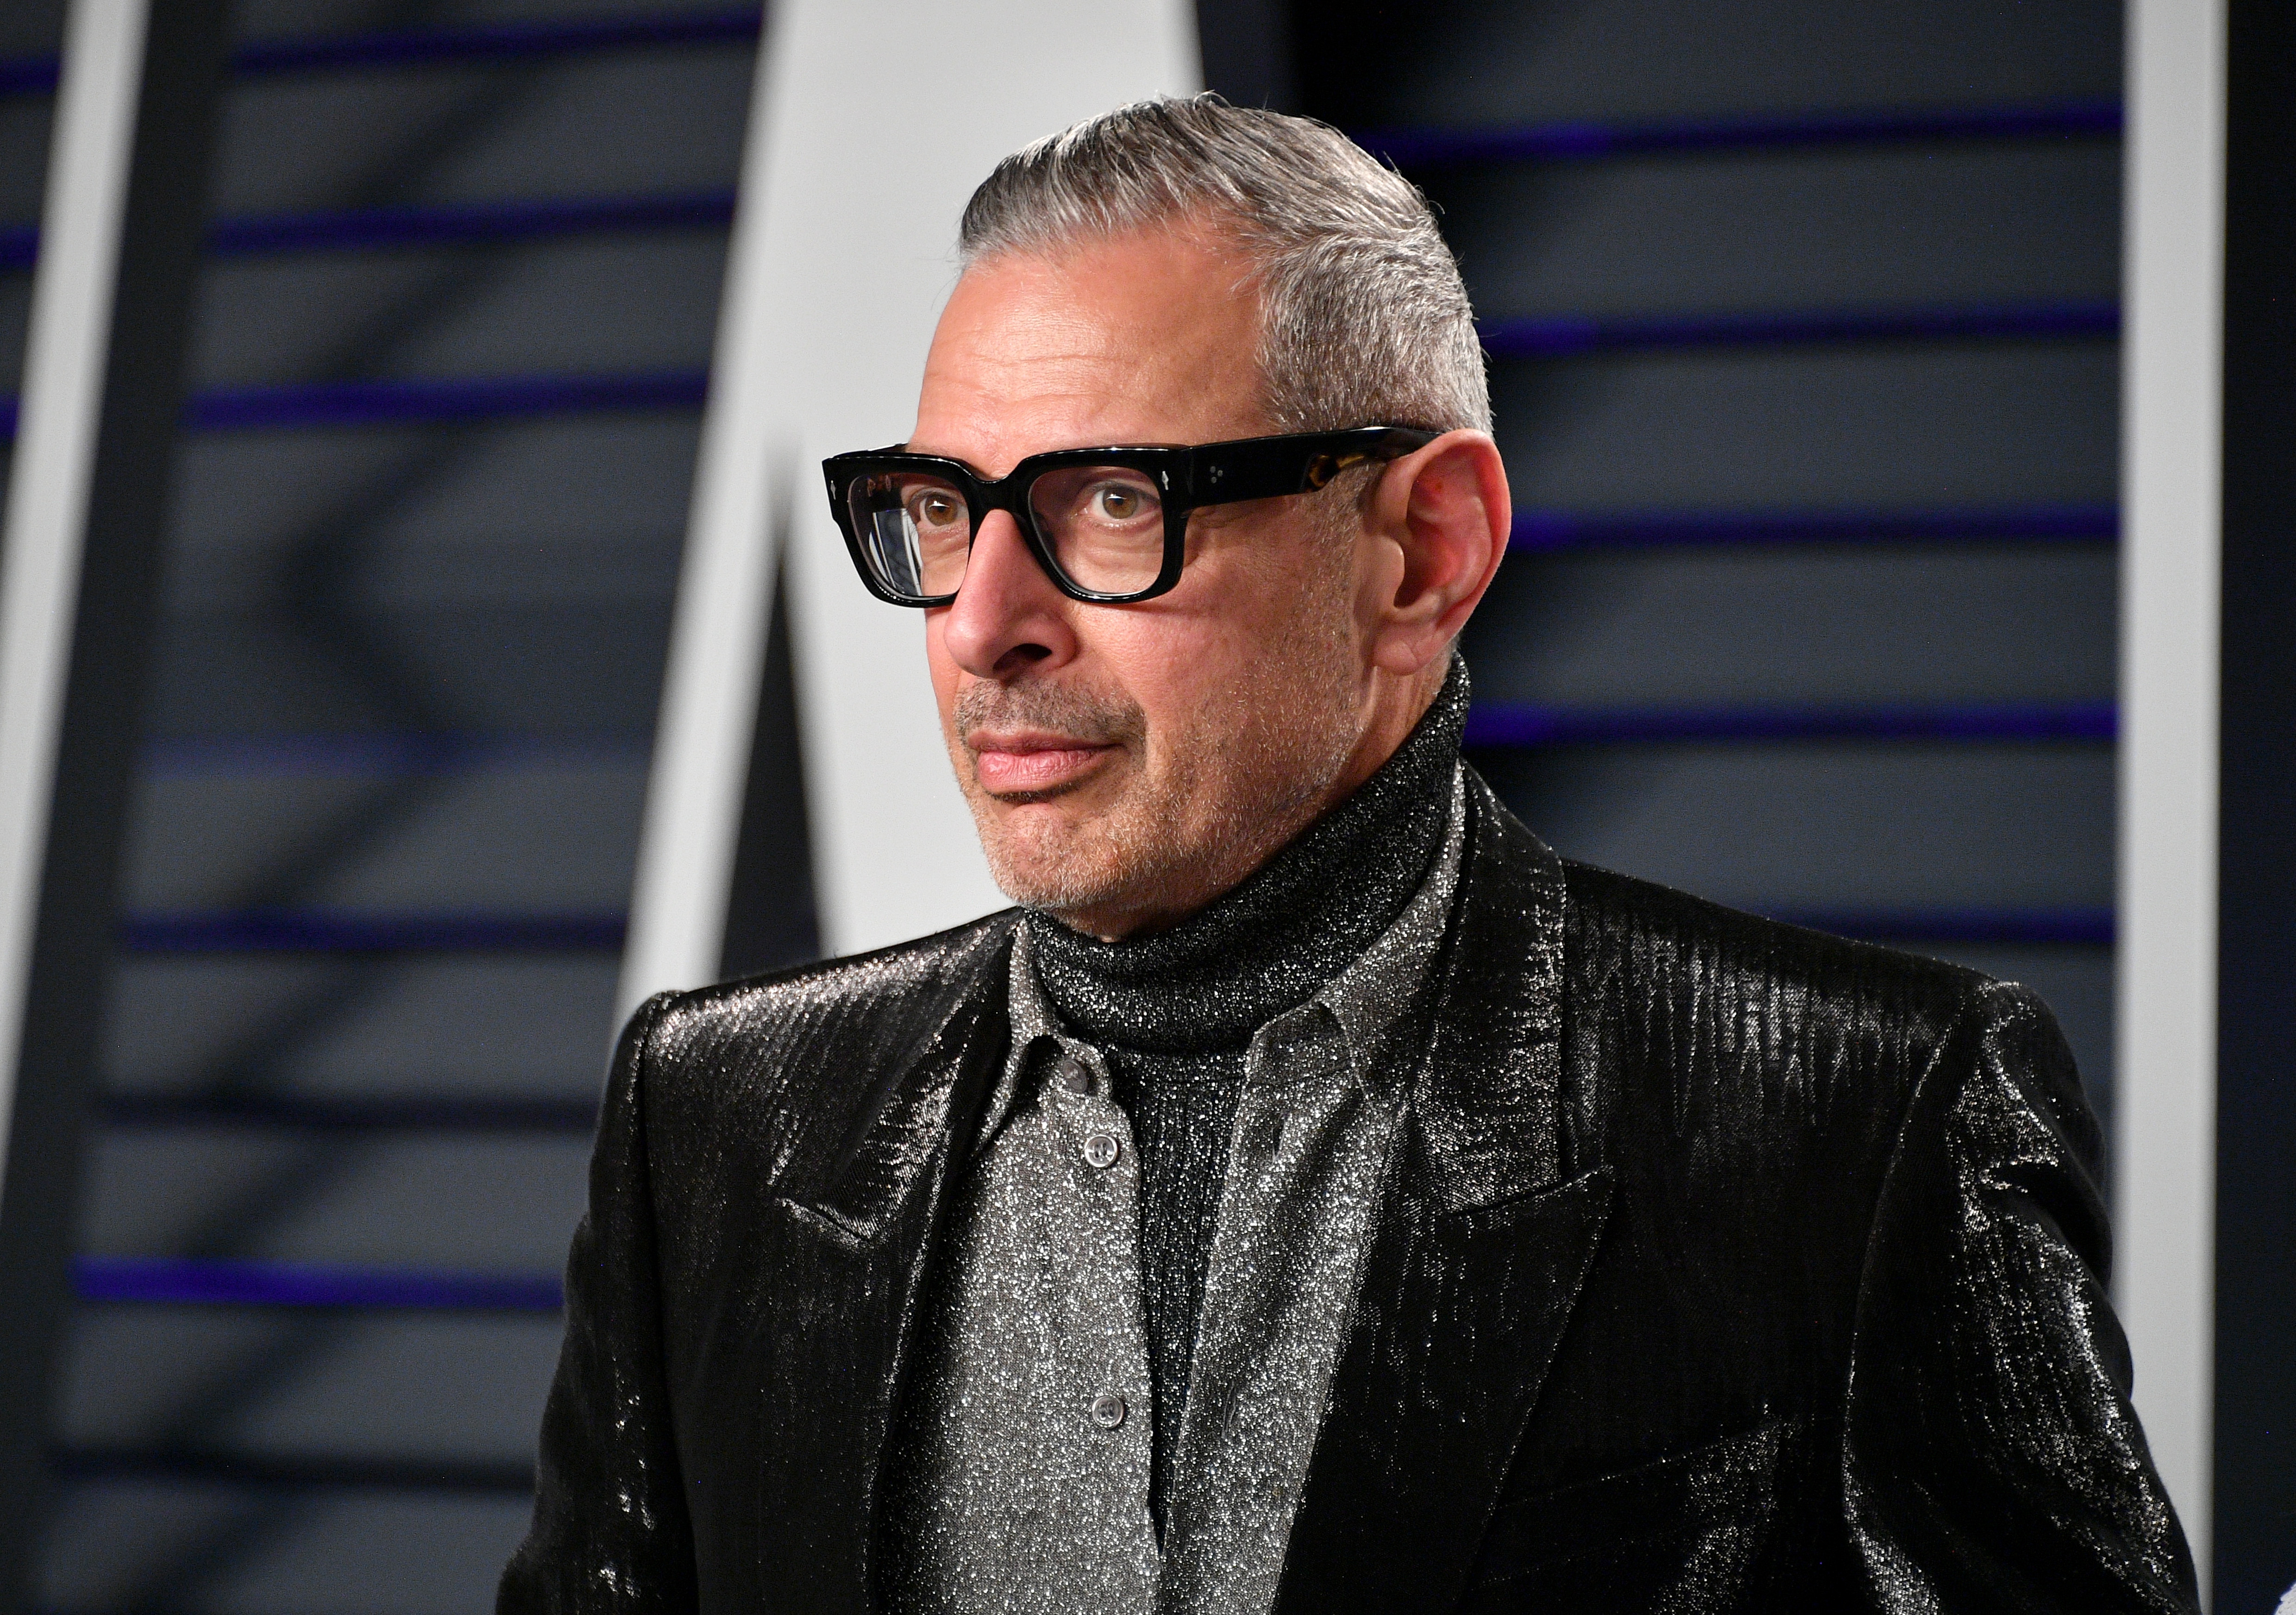 Actor Jeff Goldblum Is Coming To Phoenix Fan Fusion Here Is How To Meet Him Contact josh potter on messenger. 2